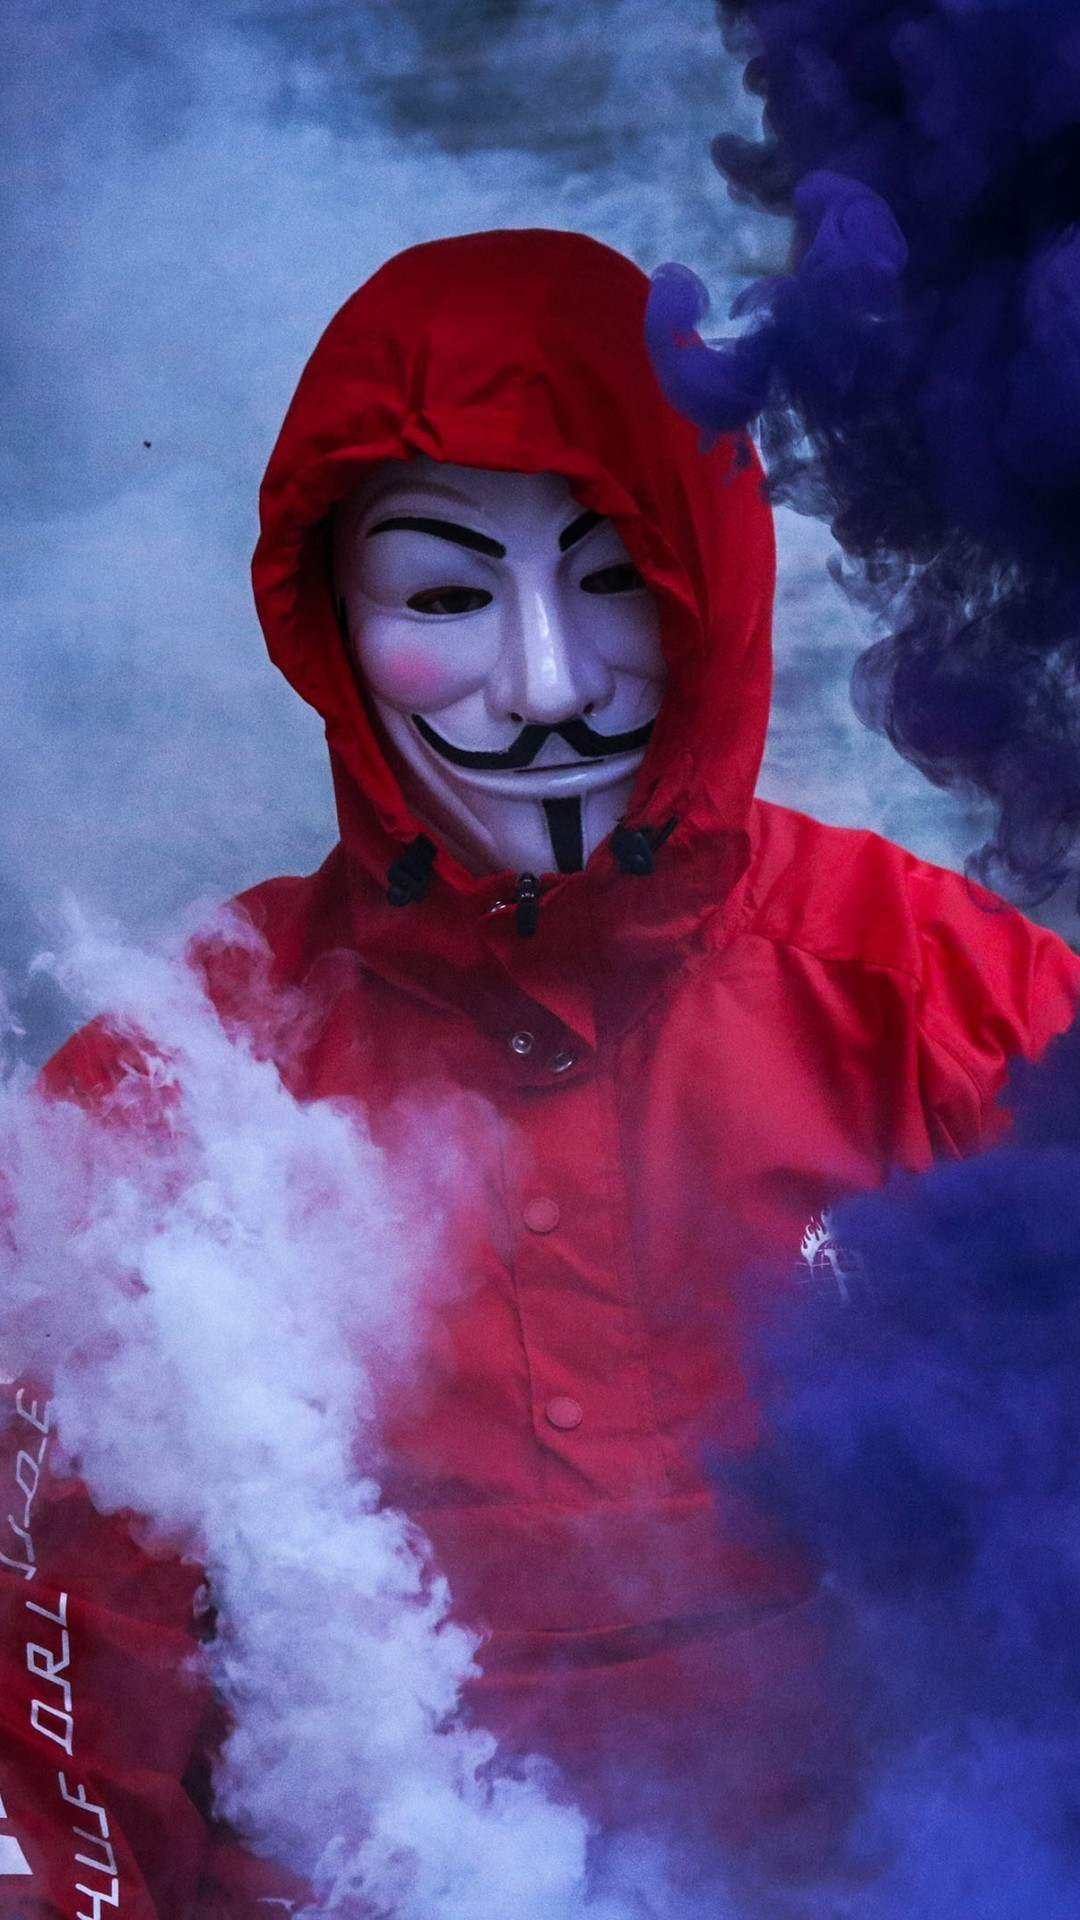 Guy Fawkes Mask Anonymous Smoke Red Hoodie Iphone 6 Smoke Wallpaper Hd 2416014 Hd Wallpaper Backgrounds Download